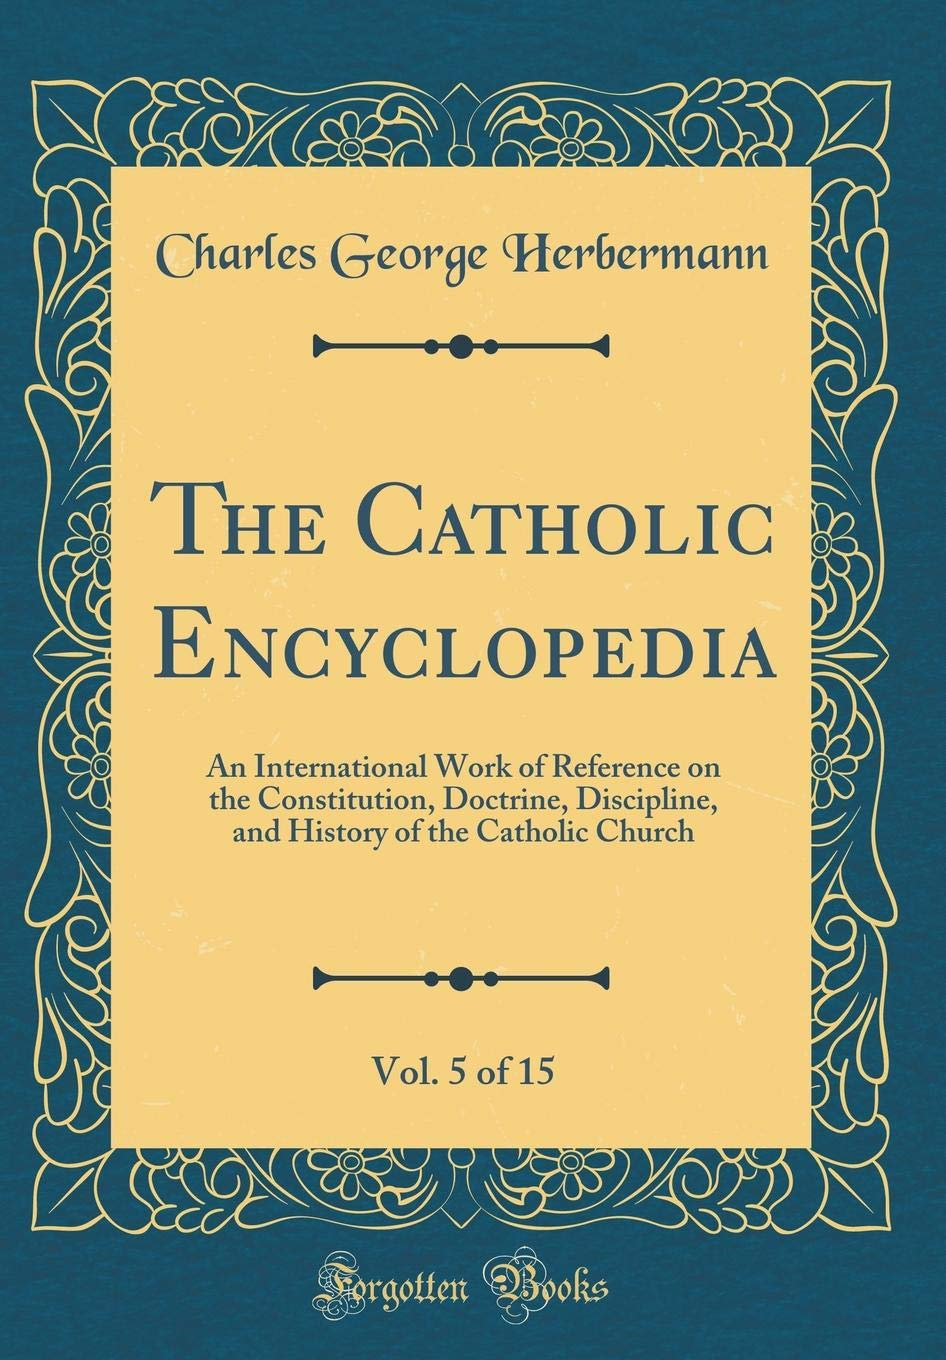 The Catholic Encyclopedia, Vol. 5 of 15: An International Work of Reference on the Constitution, Doctrine, Discipline, and History of the Catholic Church (Classic Reprint) pdf